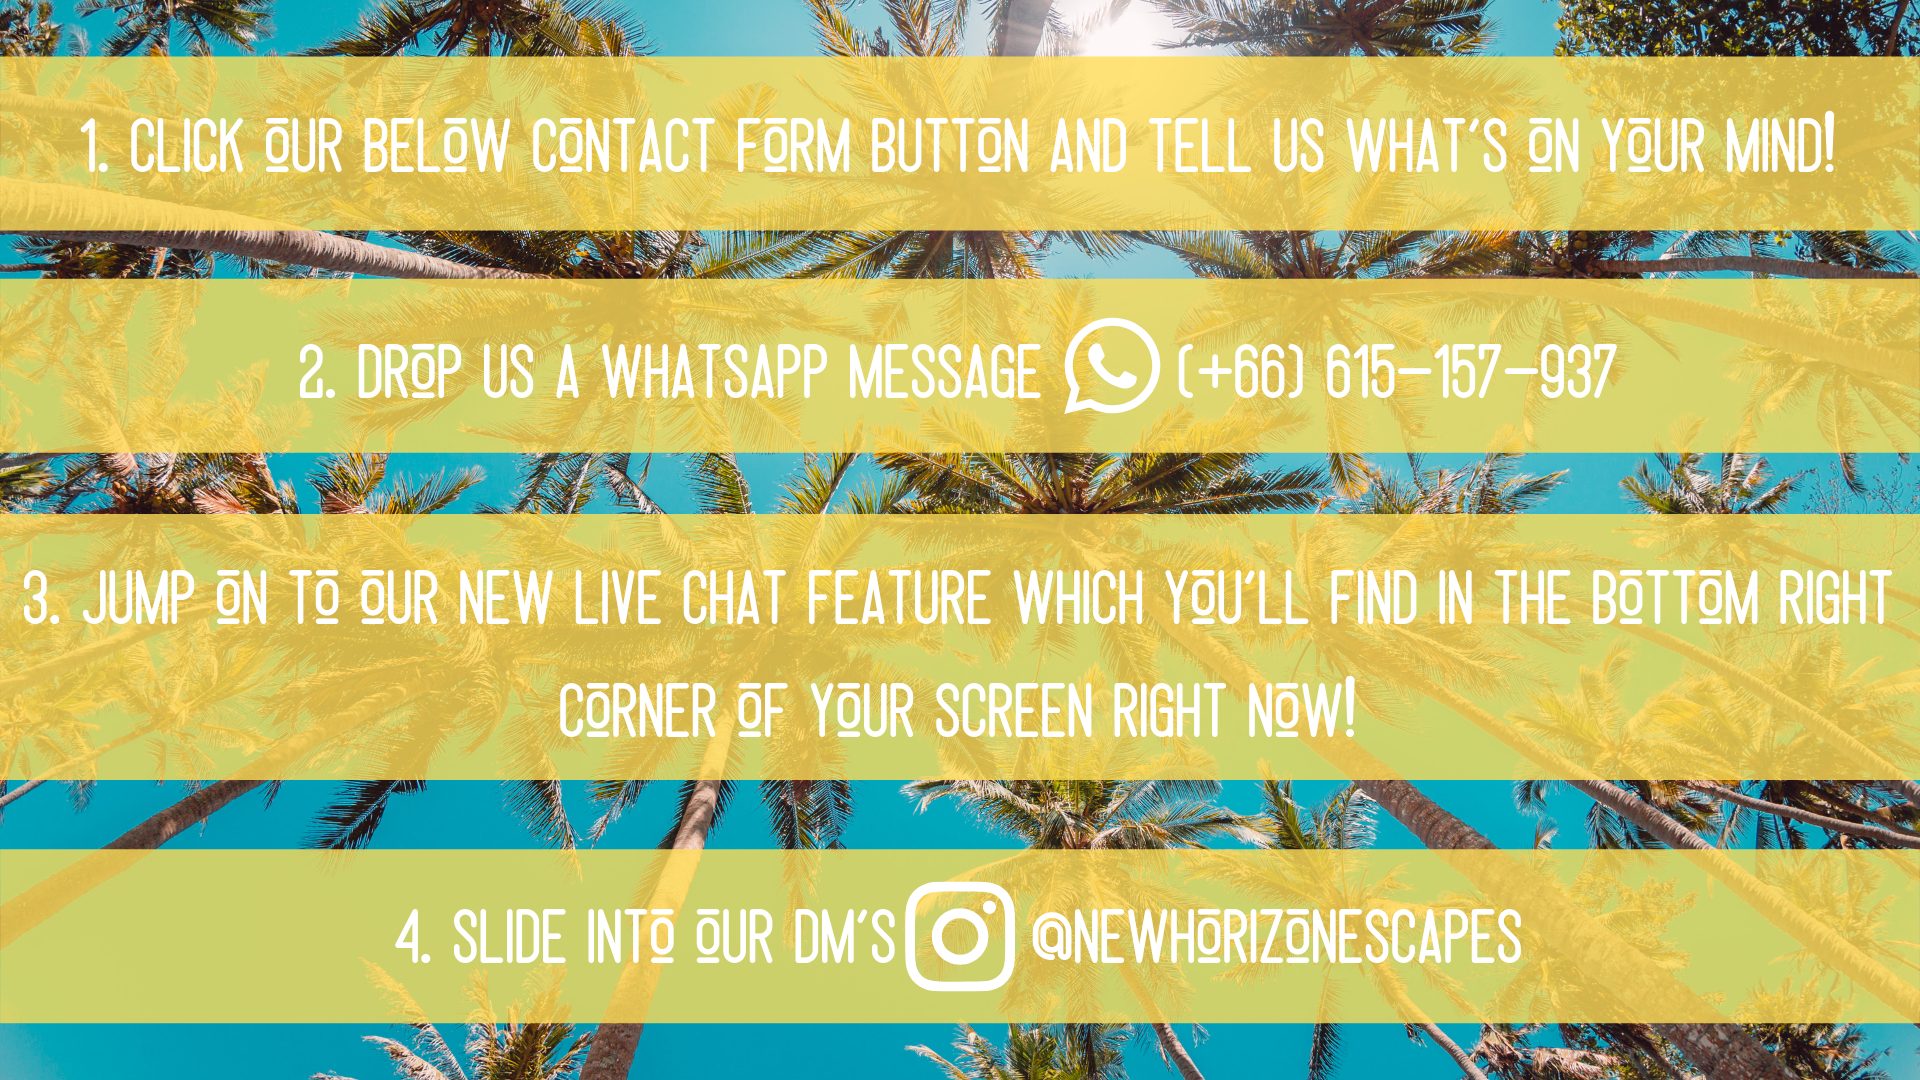 1. Simply Click our below contact form button and tell us what's on your mind!.png